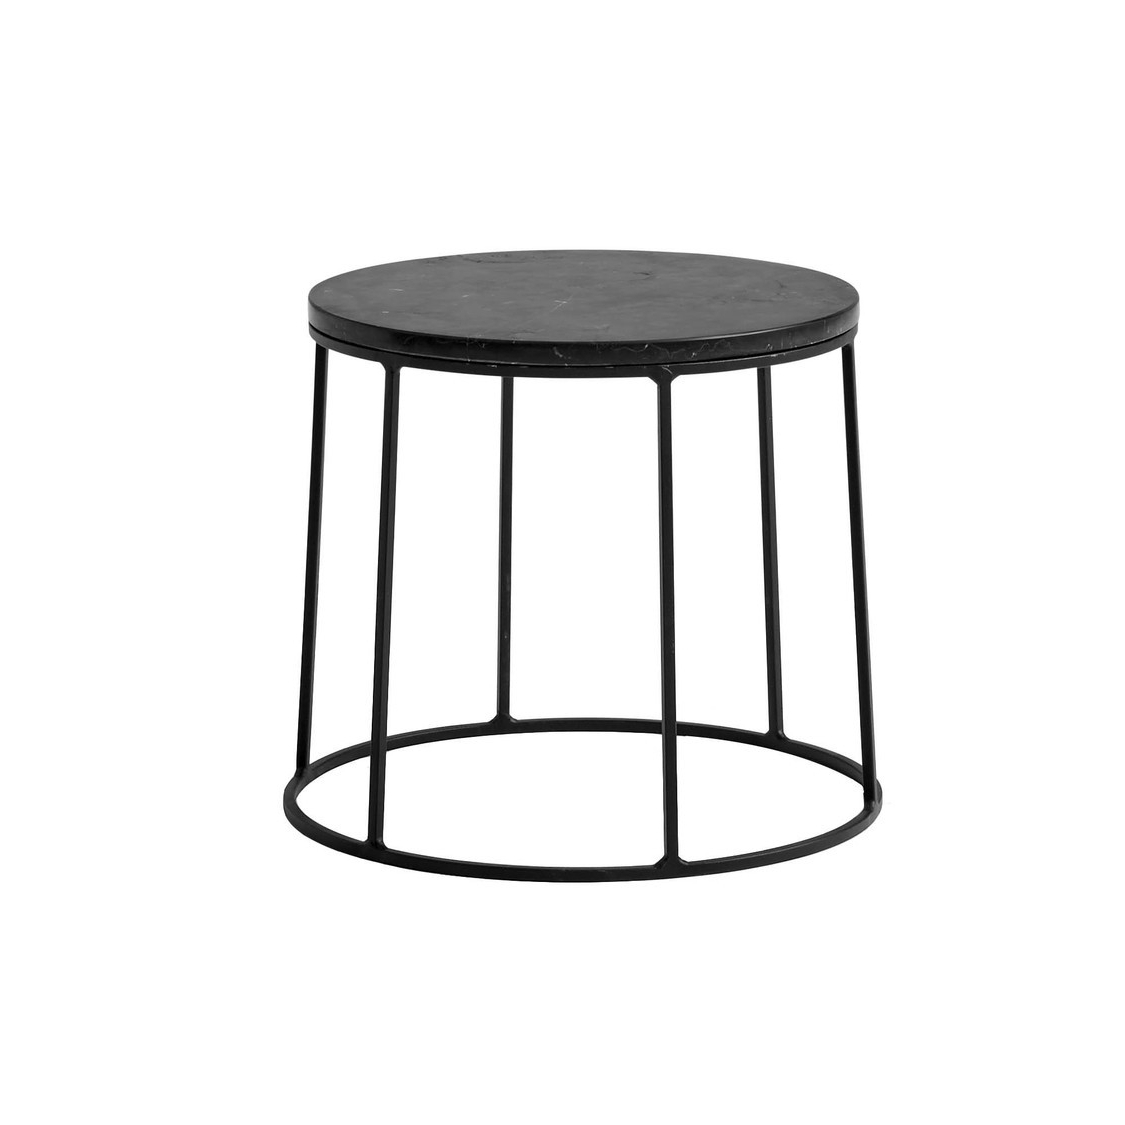 Ambientedirect With Regard To 2018 Black Wire Coffee Tables (View 17 of 20)